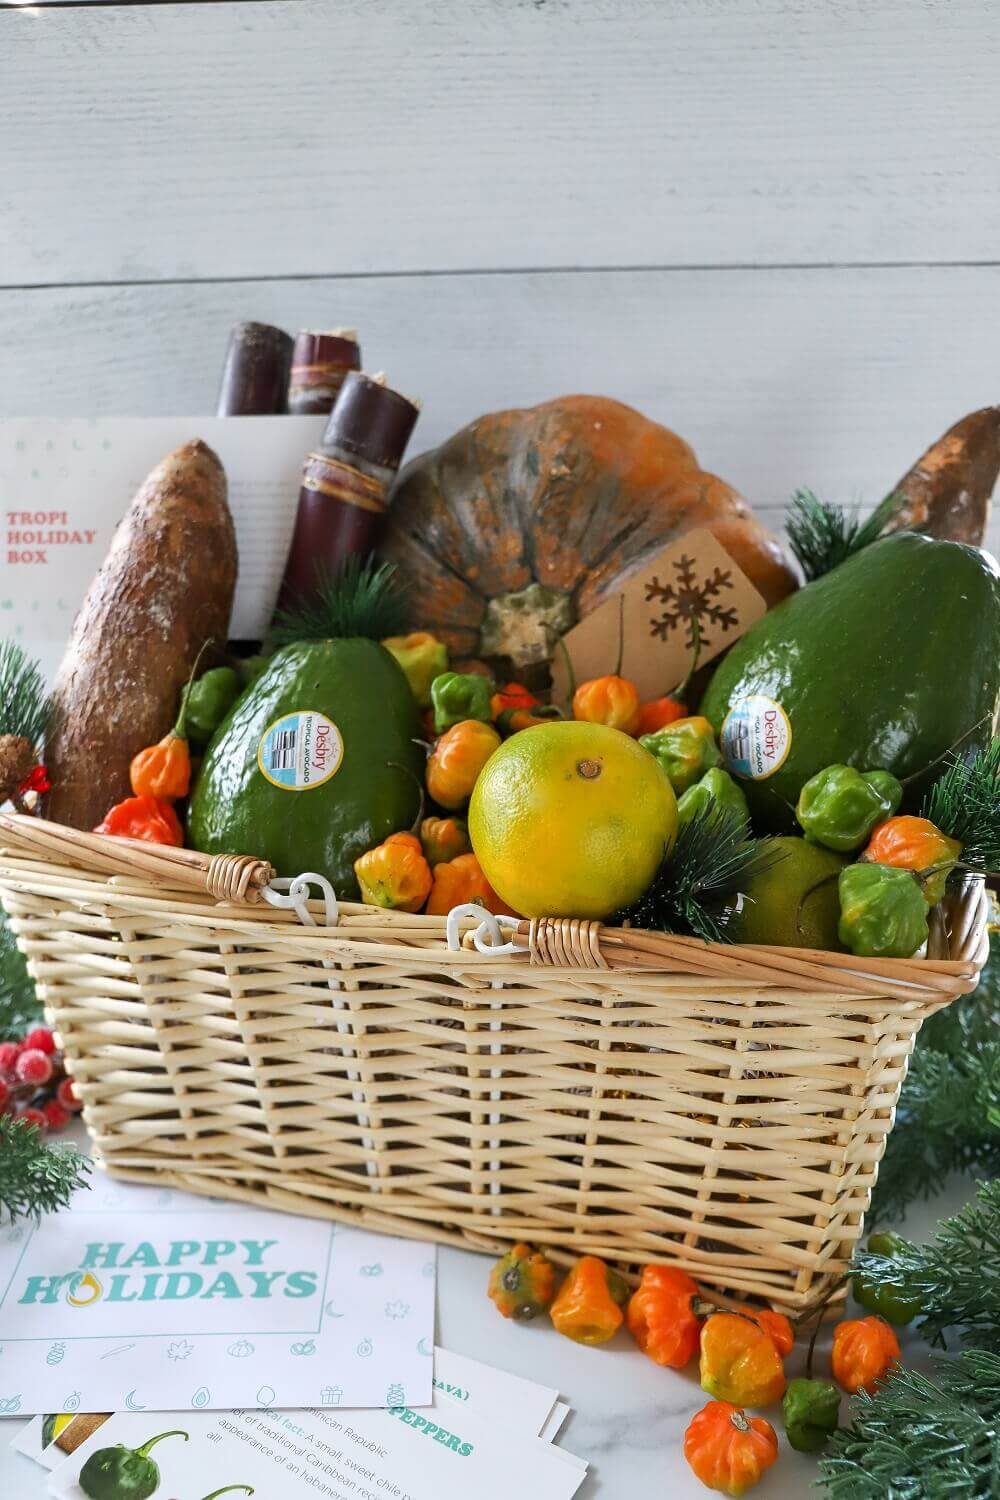 2020 Holiday Gift Guide: Tropical Fruit Basket